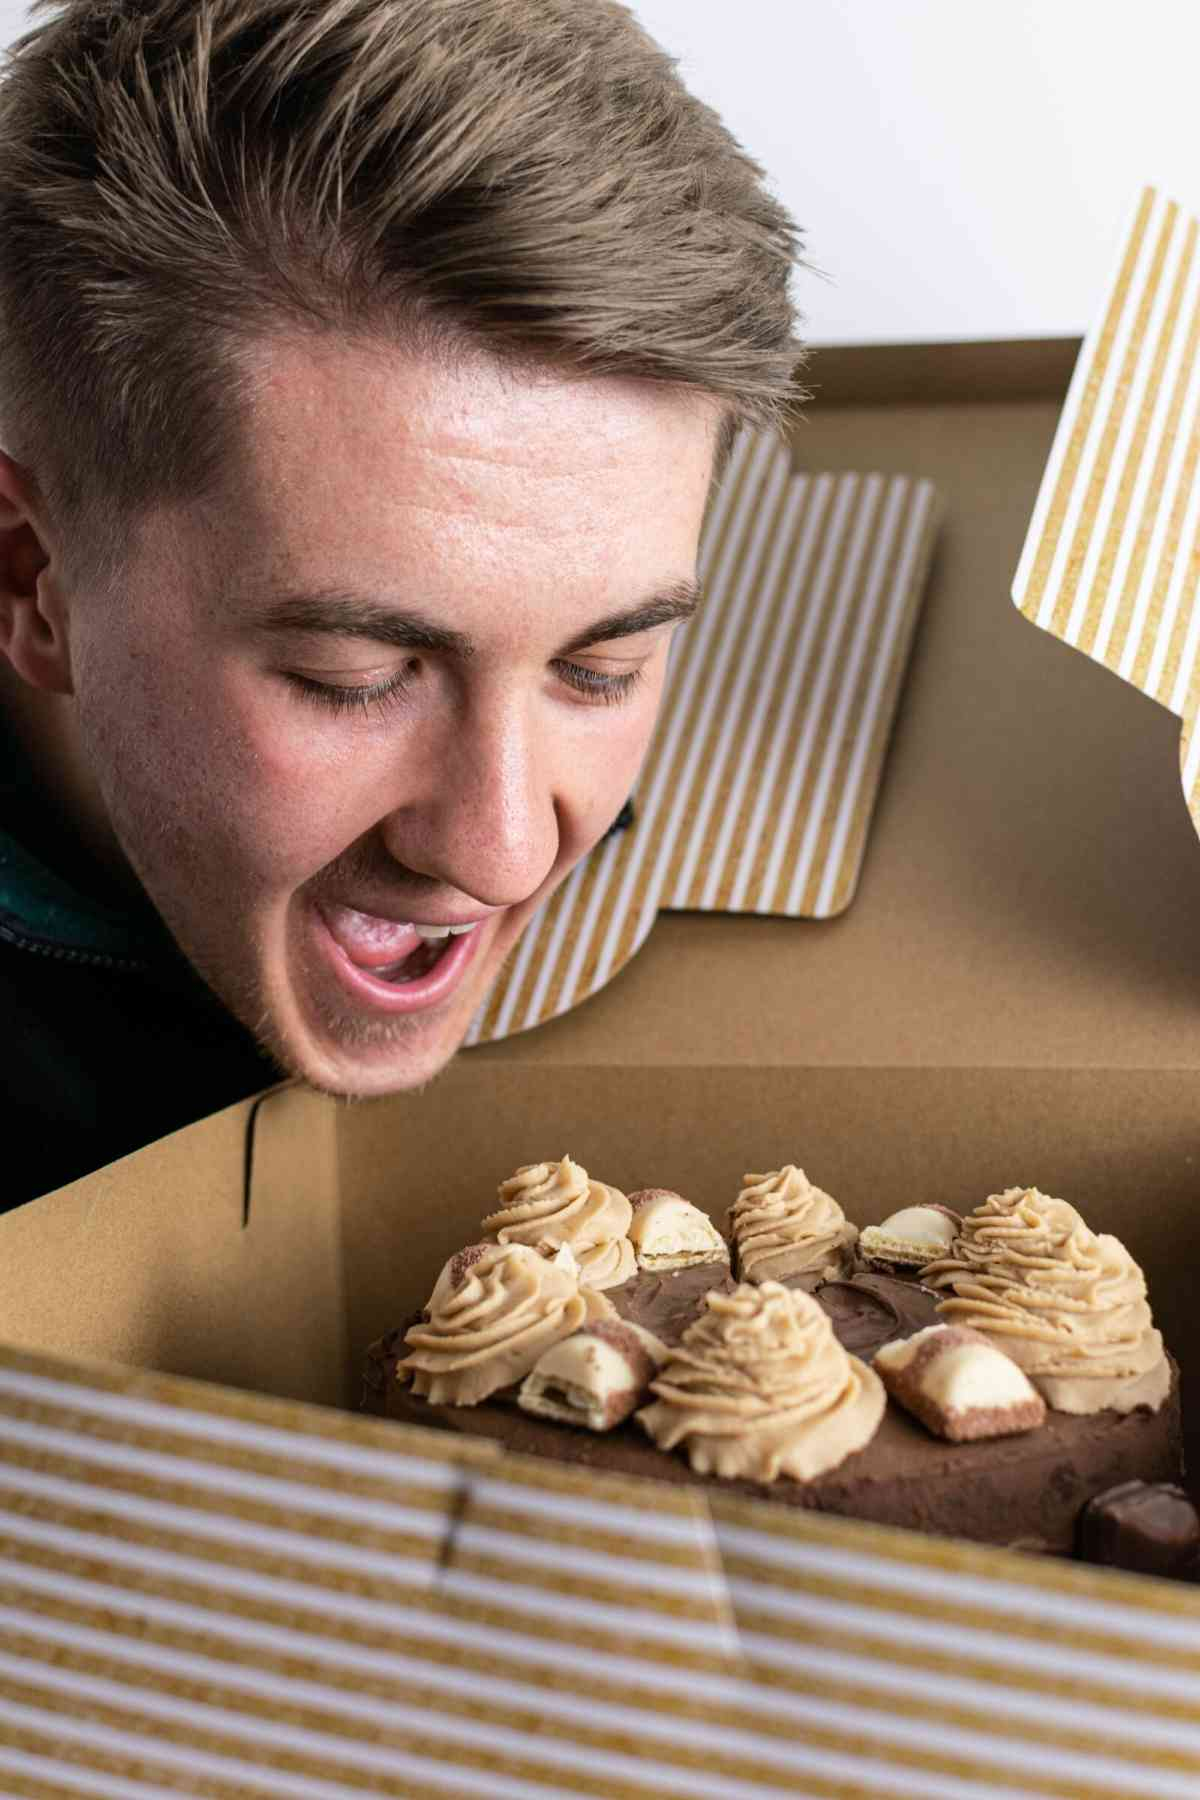 Man pretending to eat cake from above with mouth open